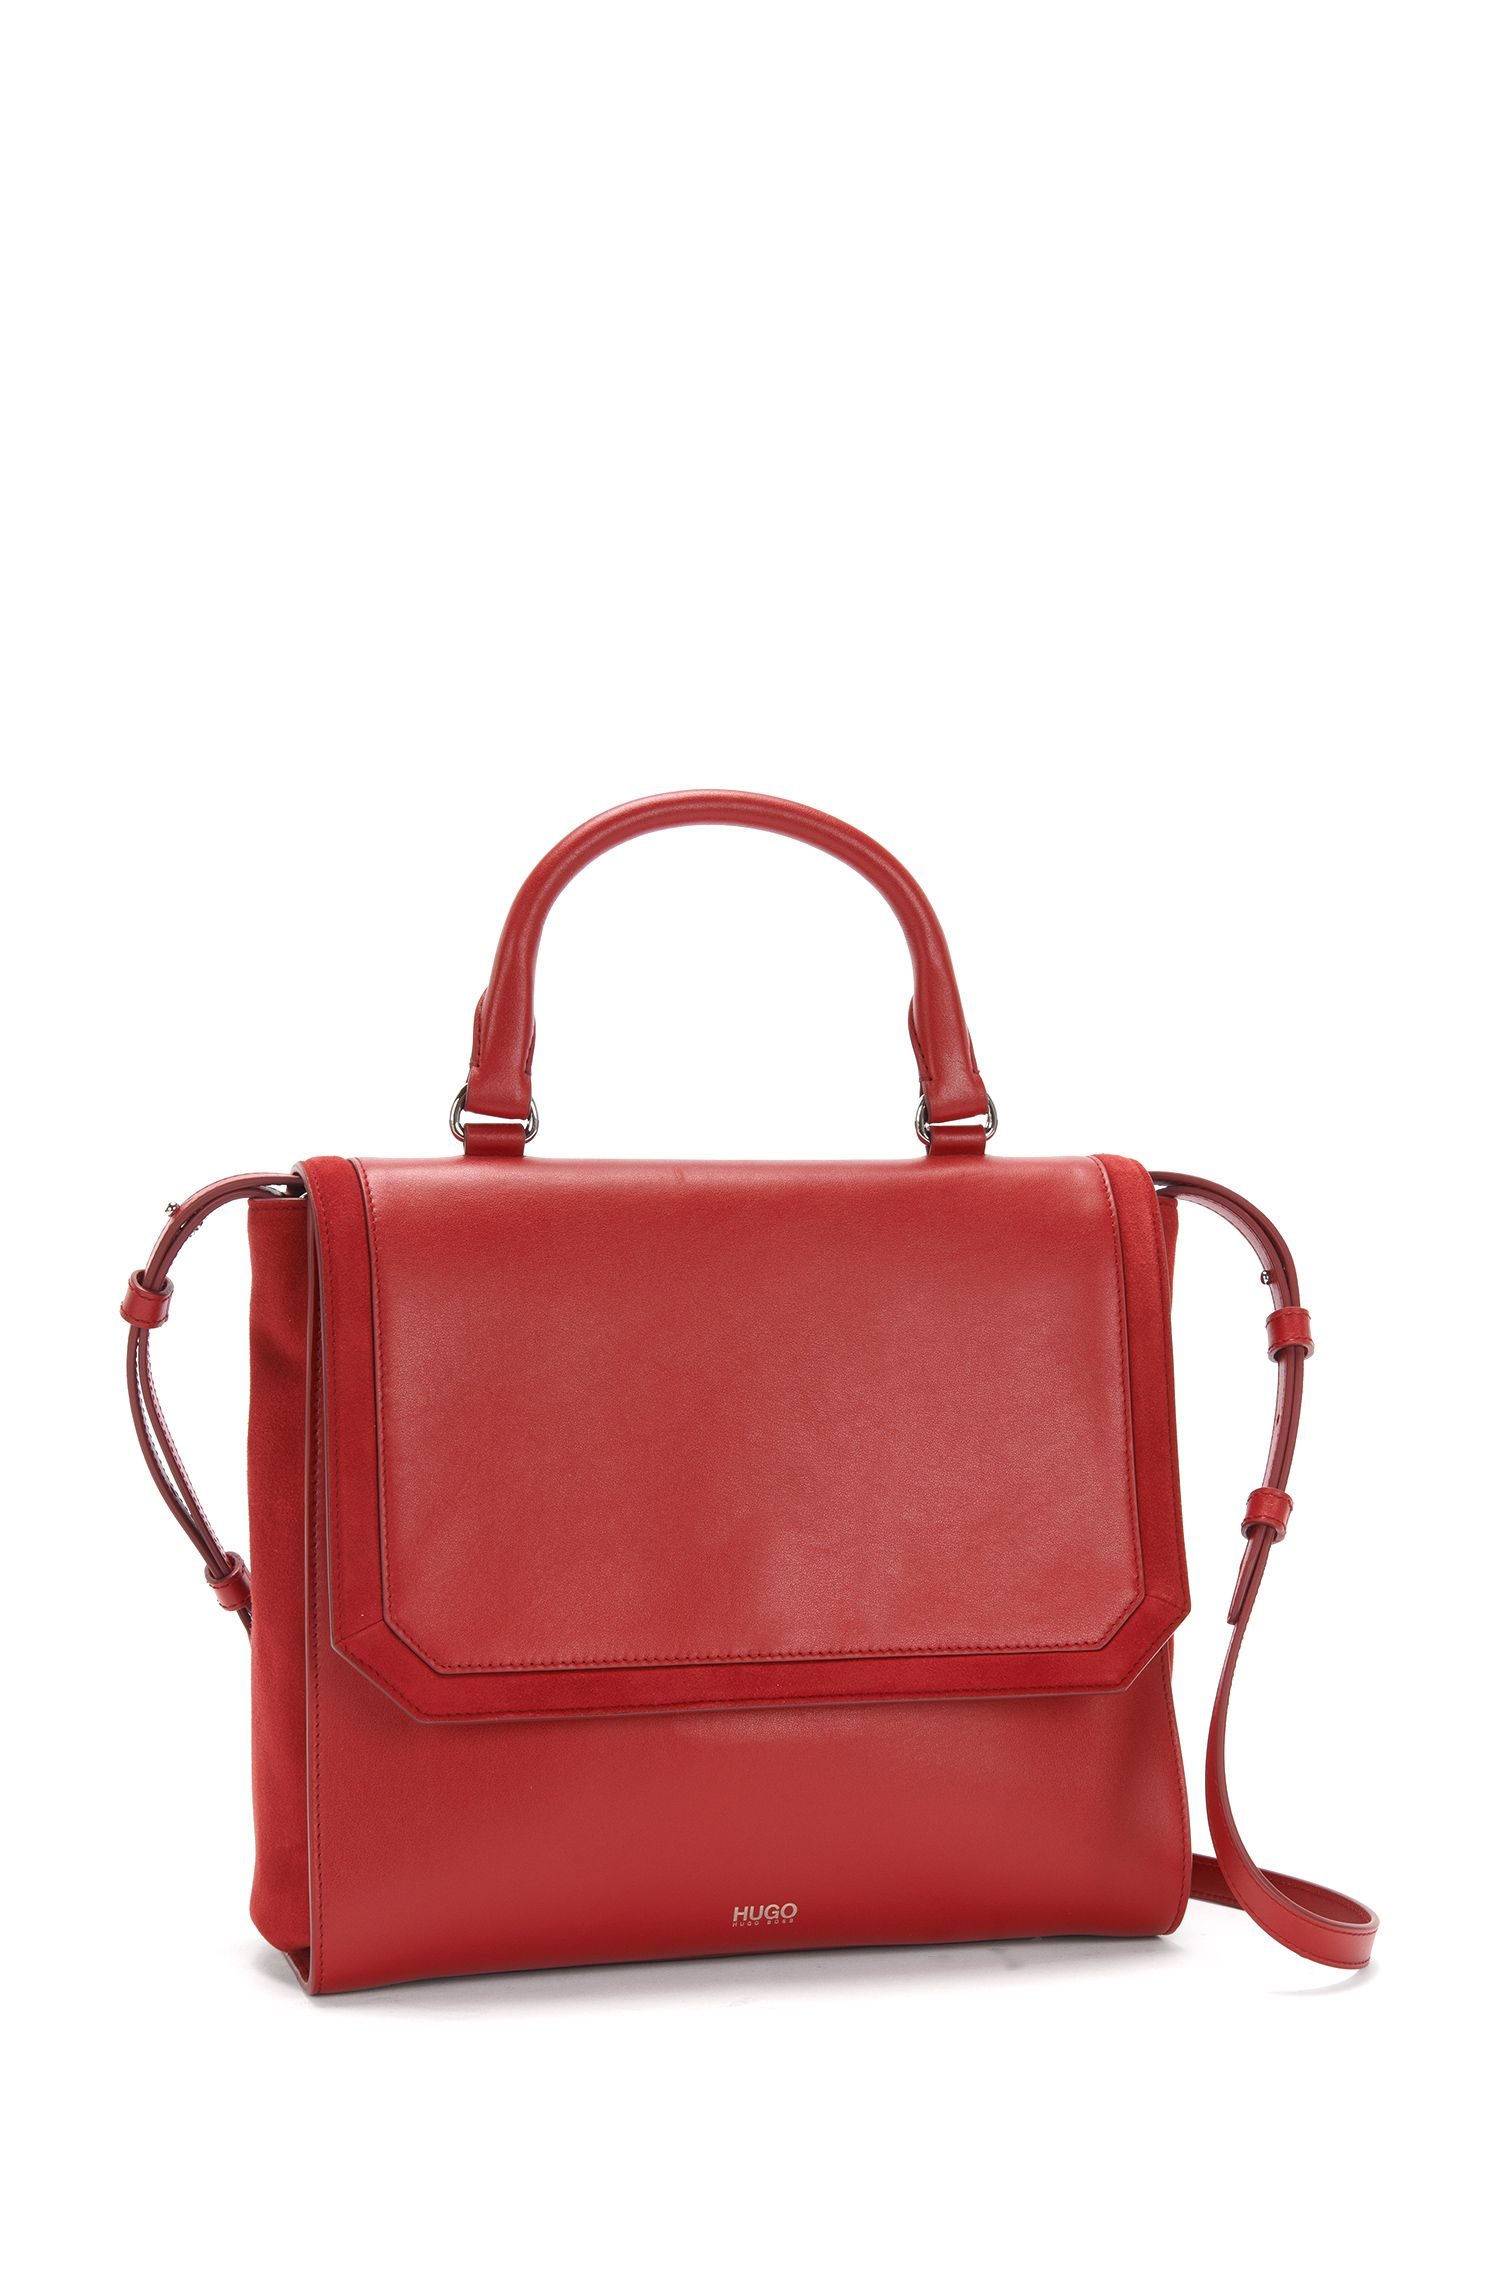 Sac en cuir de style top handle : « Florian »